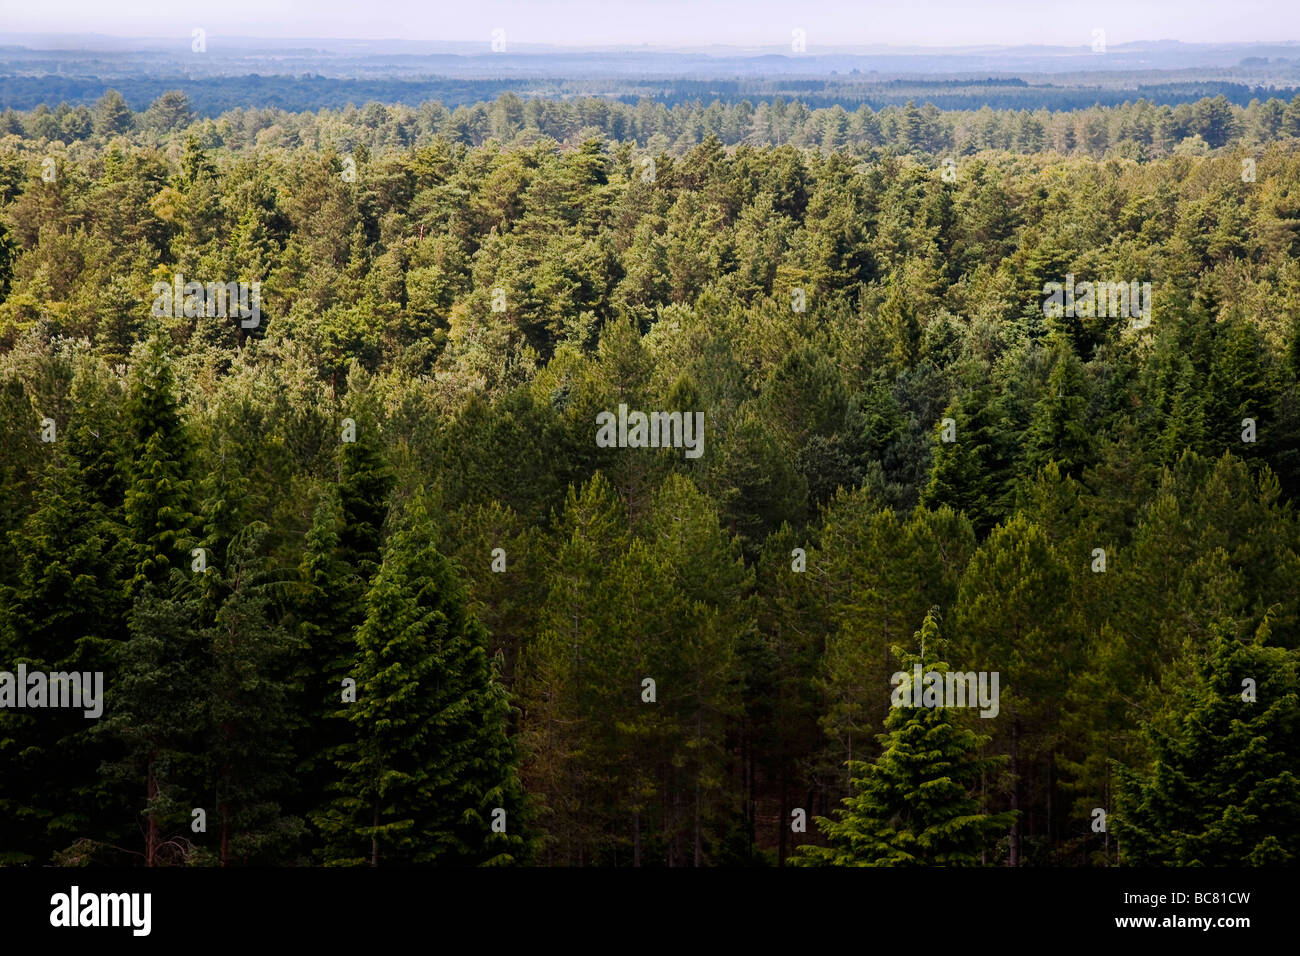 Forest of trees taken from viewpoint looking down onto. - Stock Image